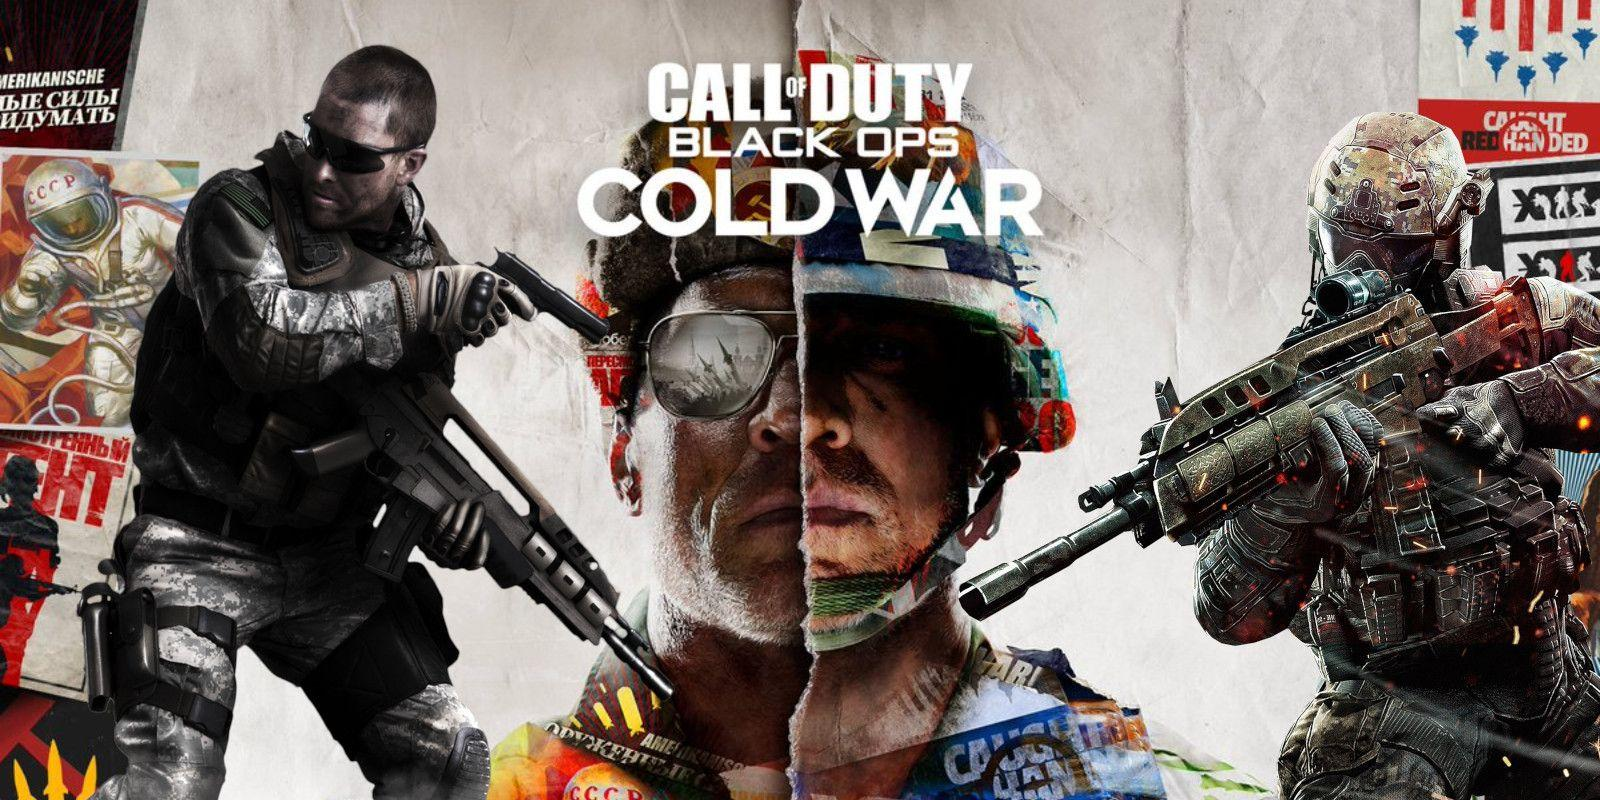 Black Ops Cold War To Be Direct Sequel To First Black Ops Gamezo